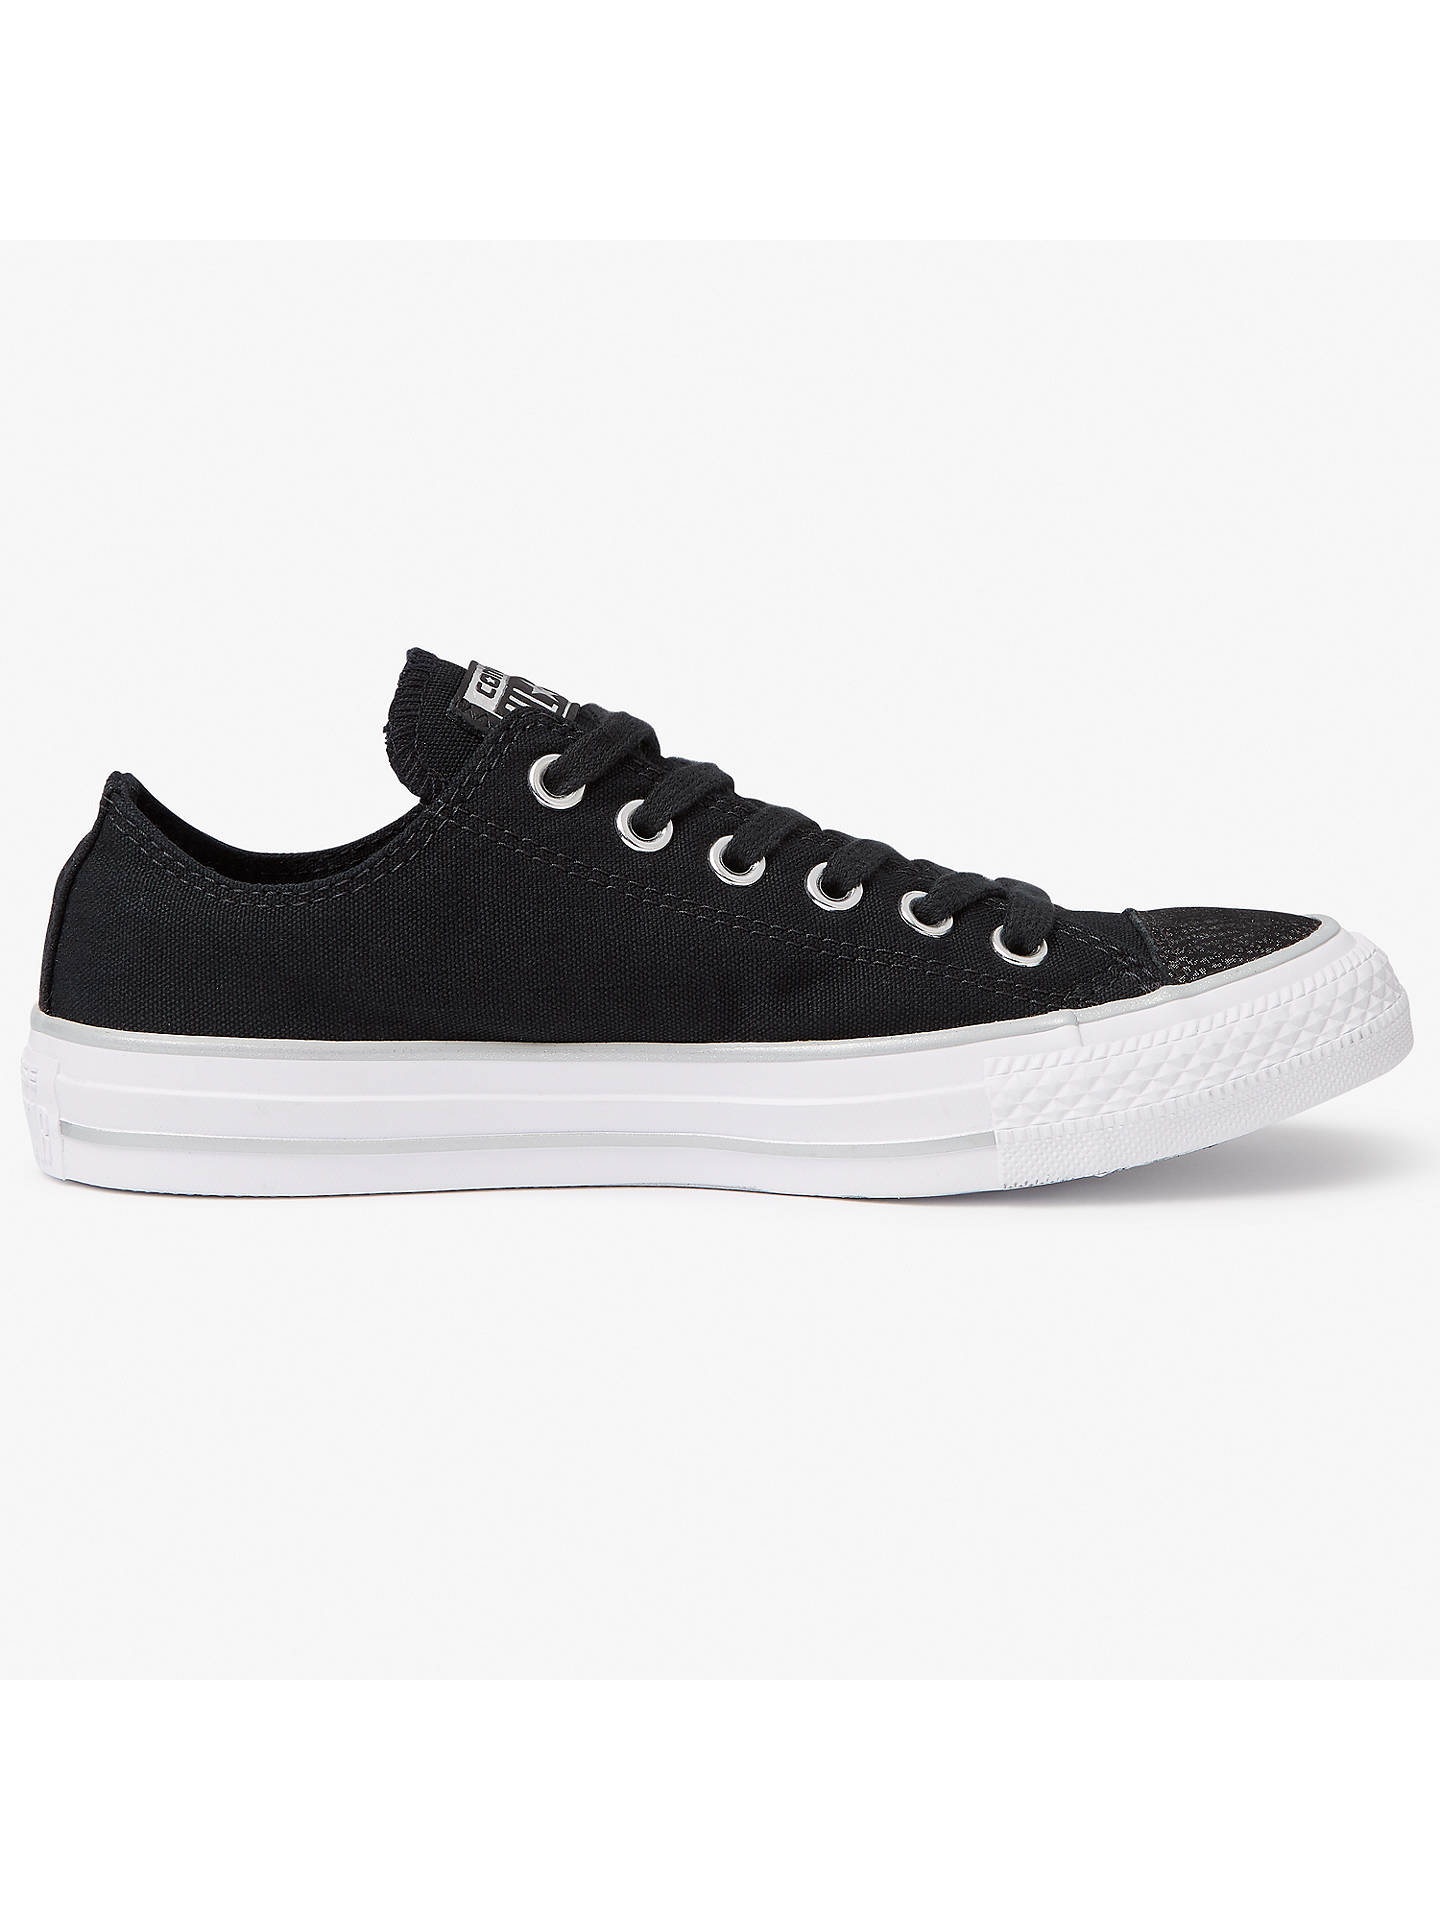 f2dfc6f722e8 Converse Chuck Taylor All Star Women s Ox Mono Toe Cap Trainers at ...